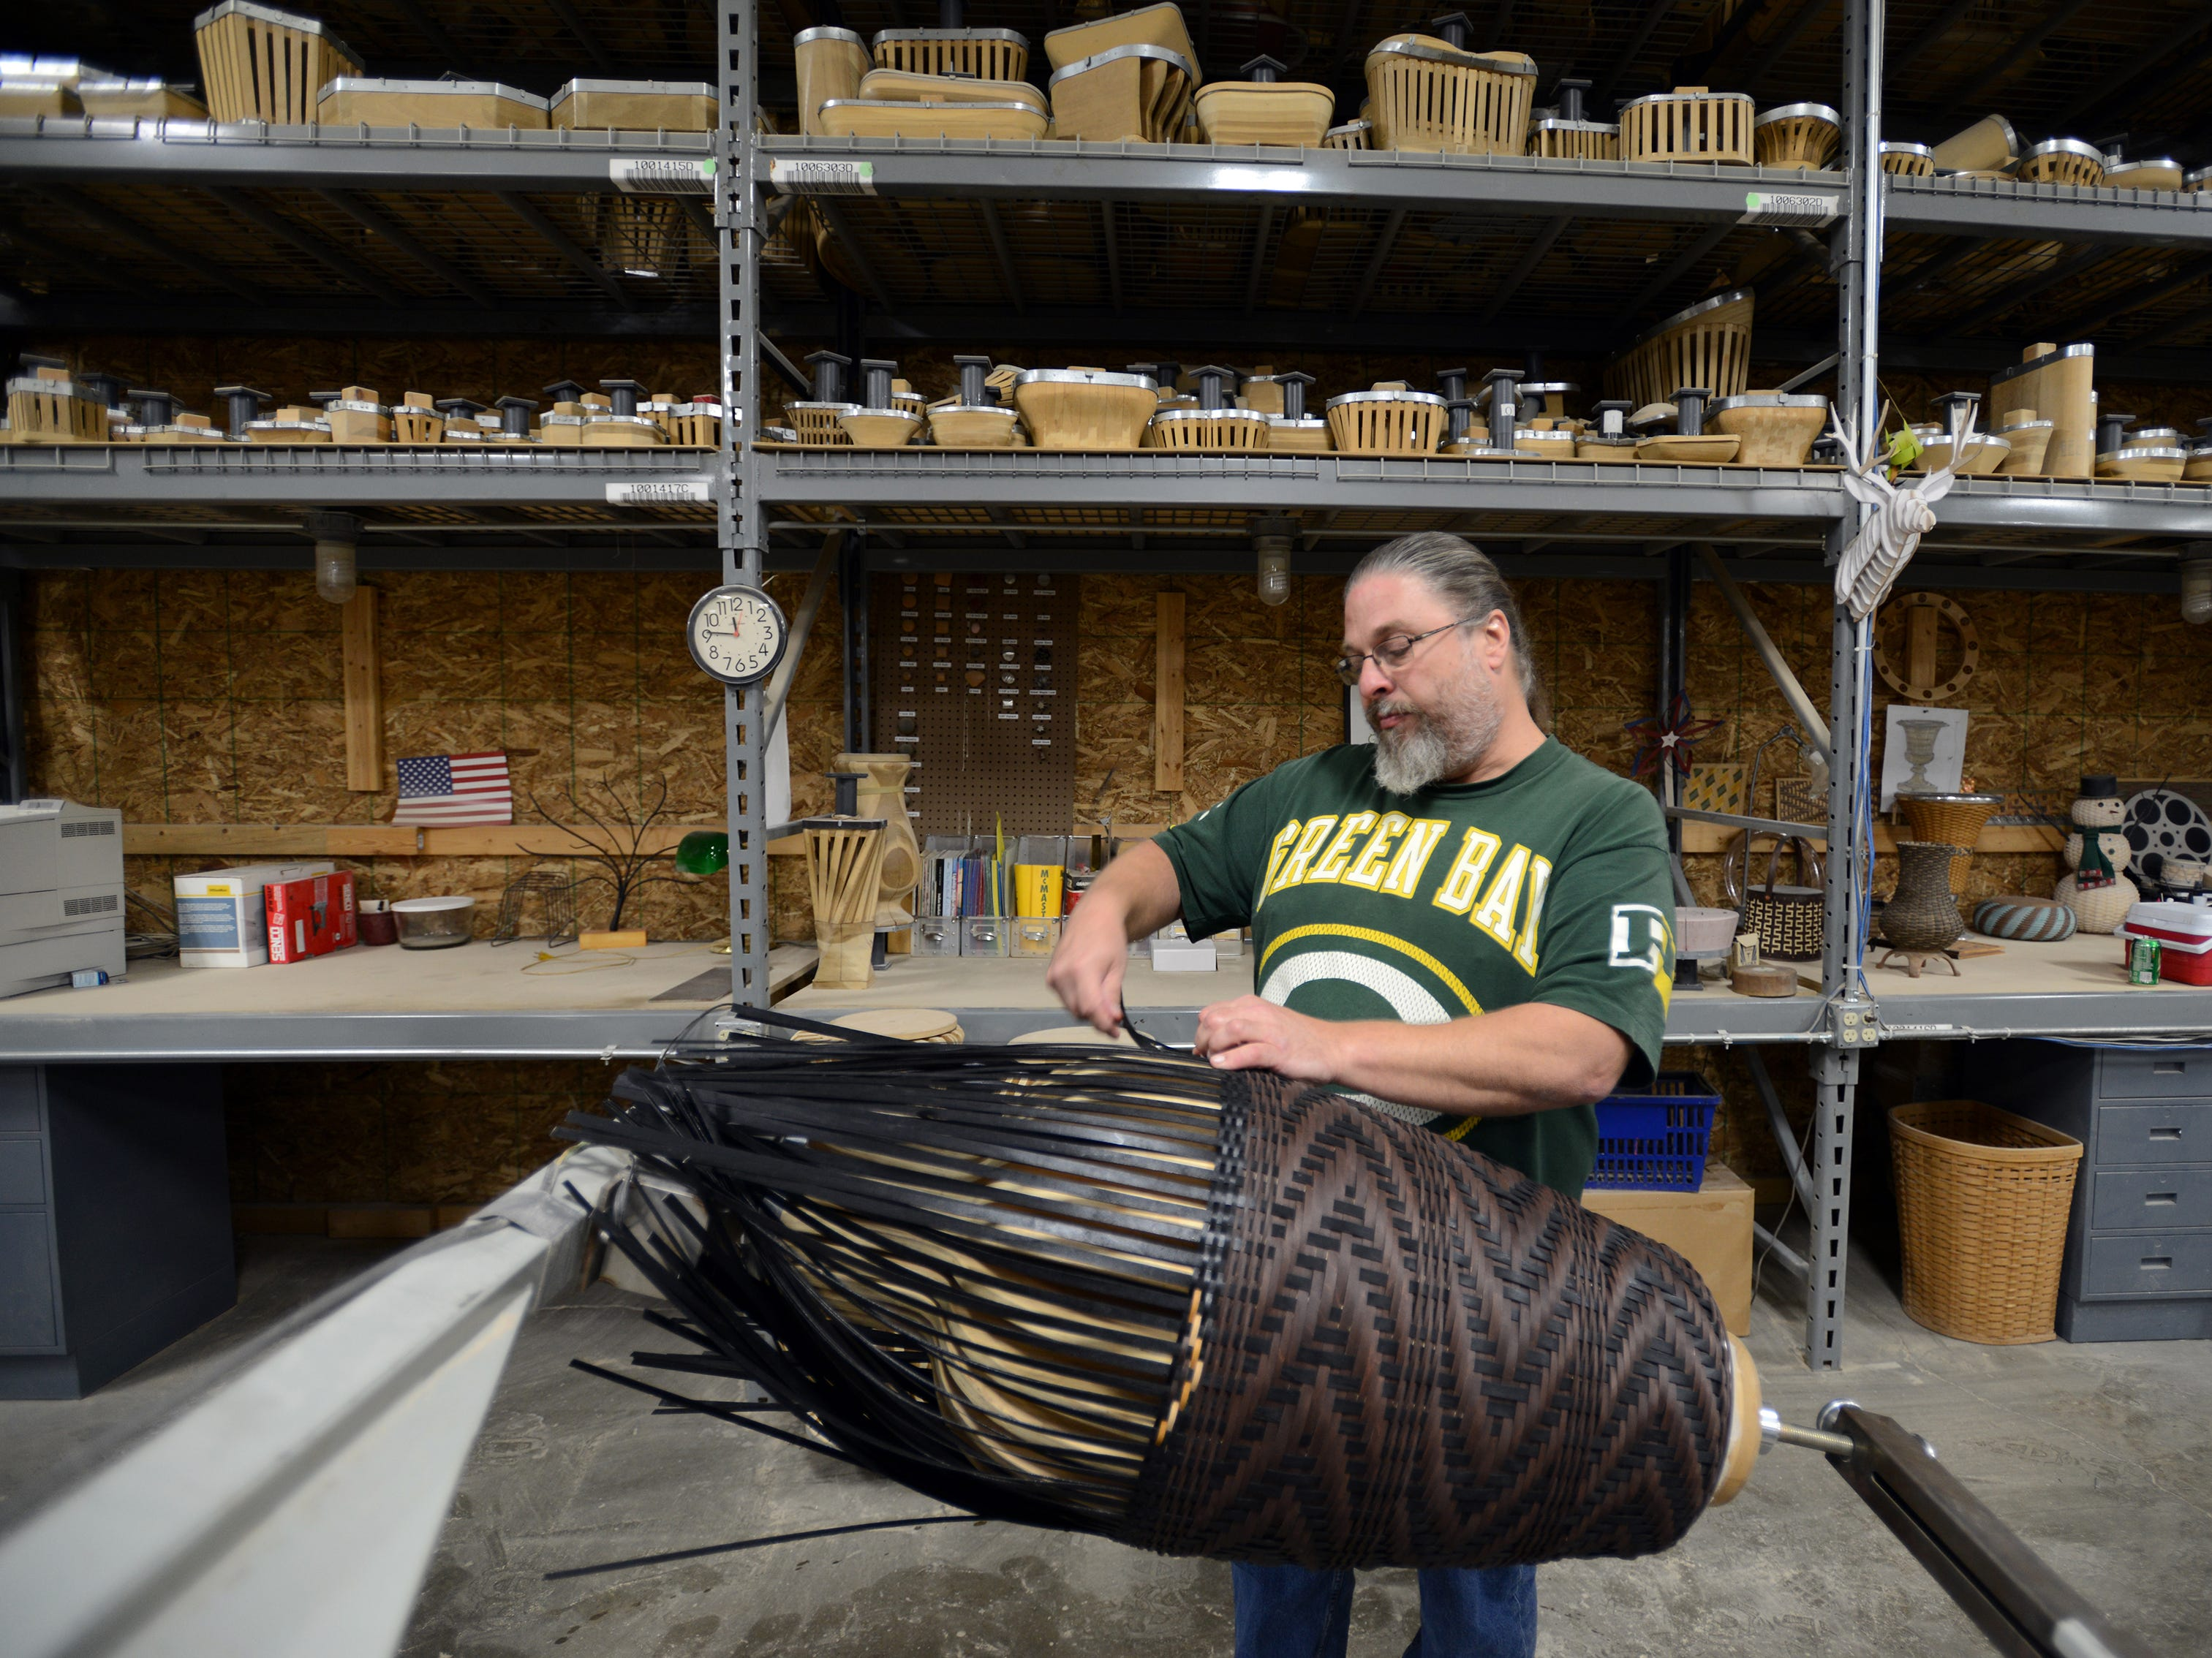 Brian Diltz, one of two Longaberger weavers who design the company's baskets, weaves a Santa Fe Urn in the company's Longaberger Couture line.